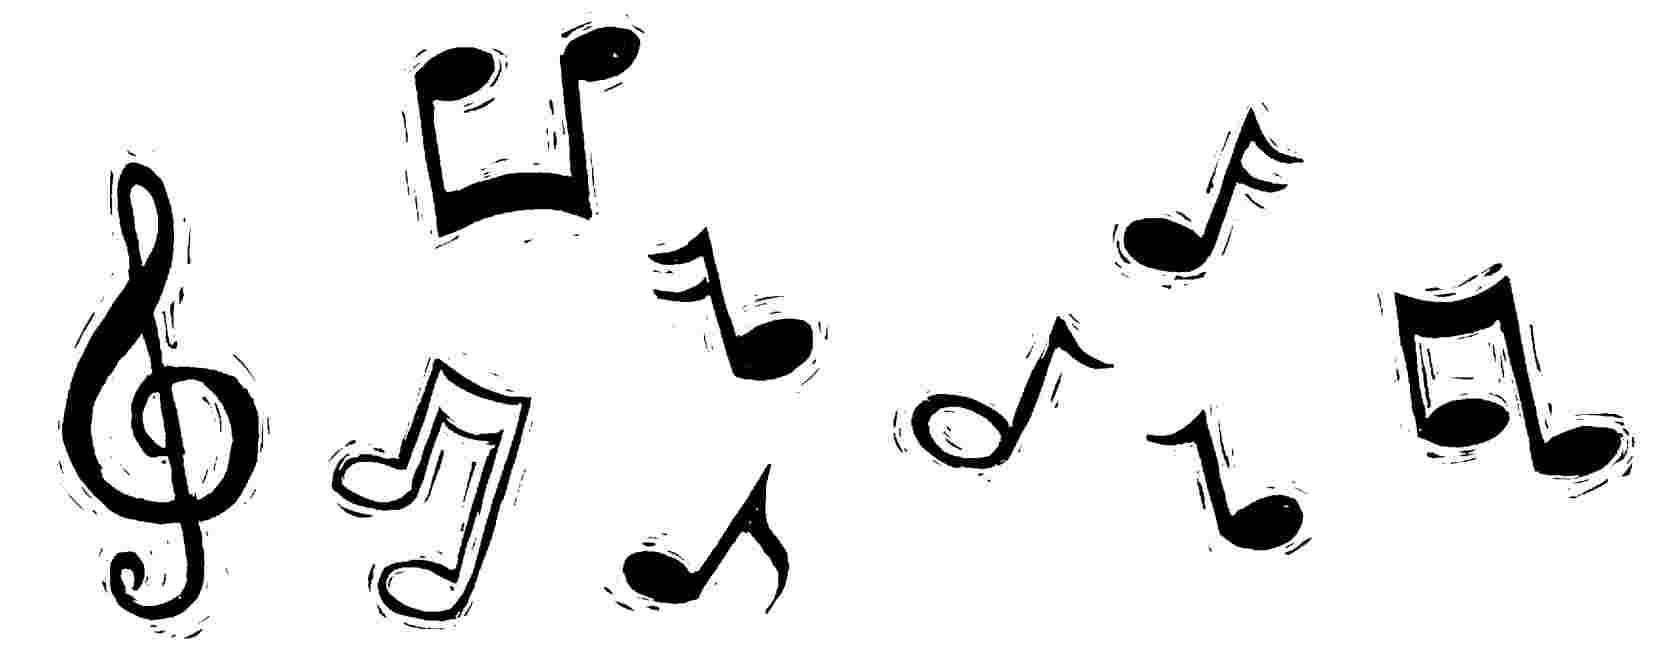 Drawn music notes rap music Clip Clipart on Image library